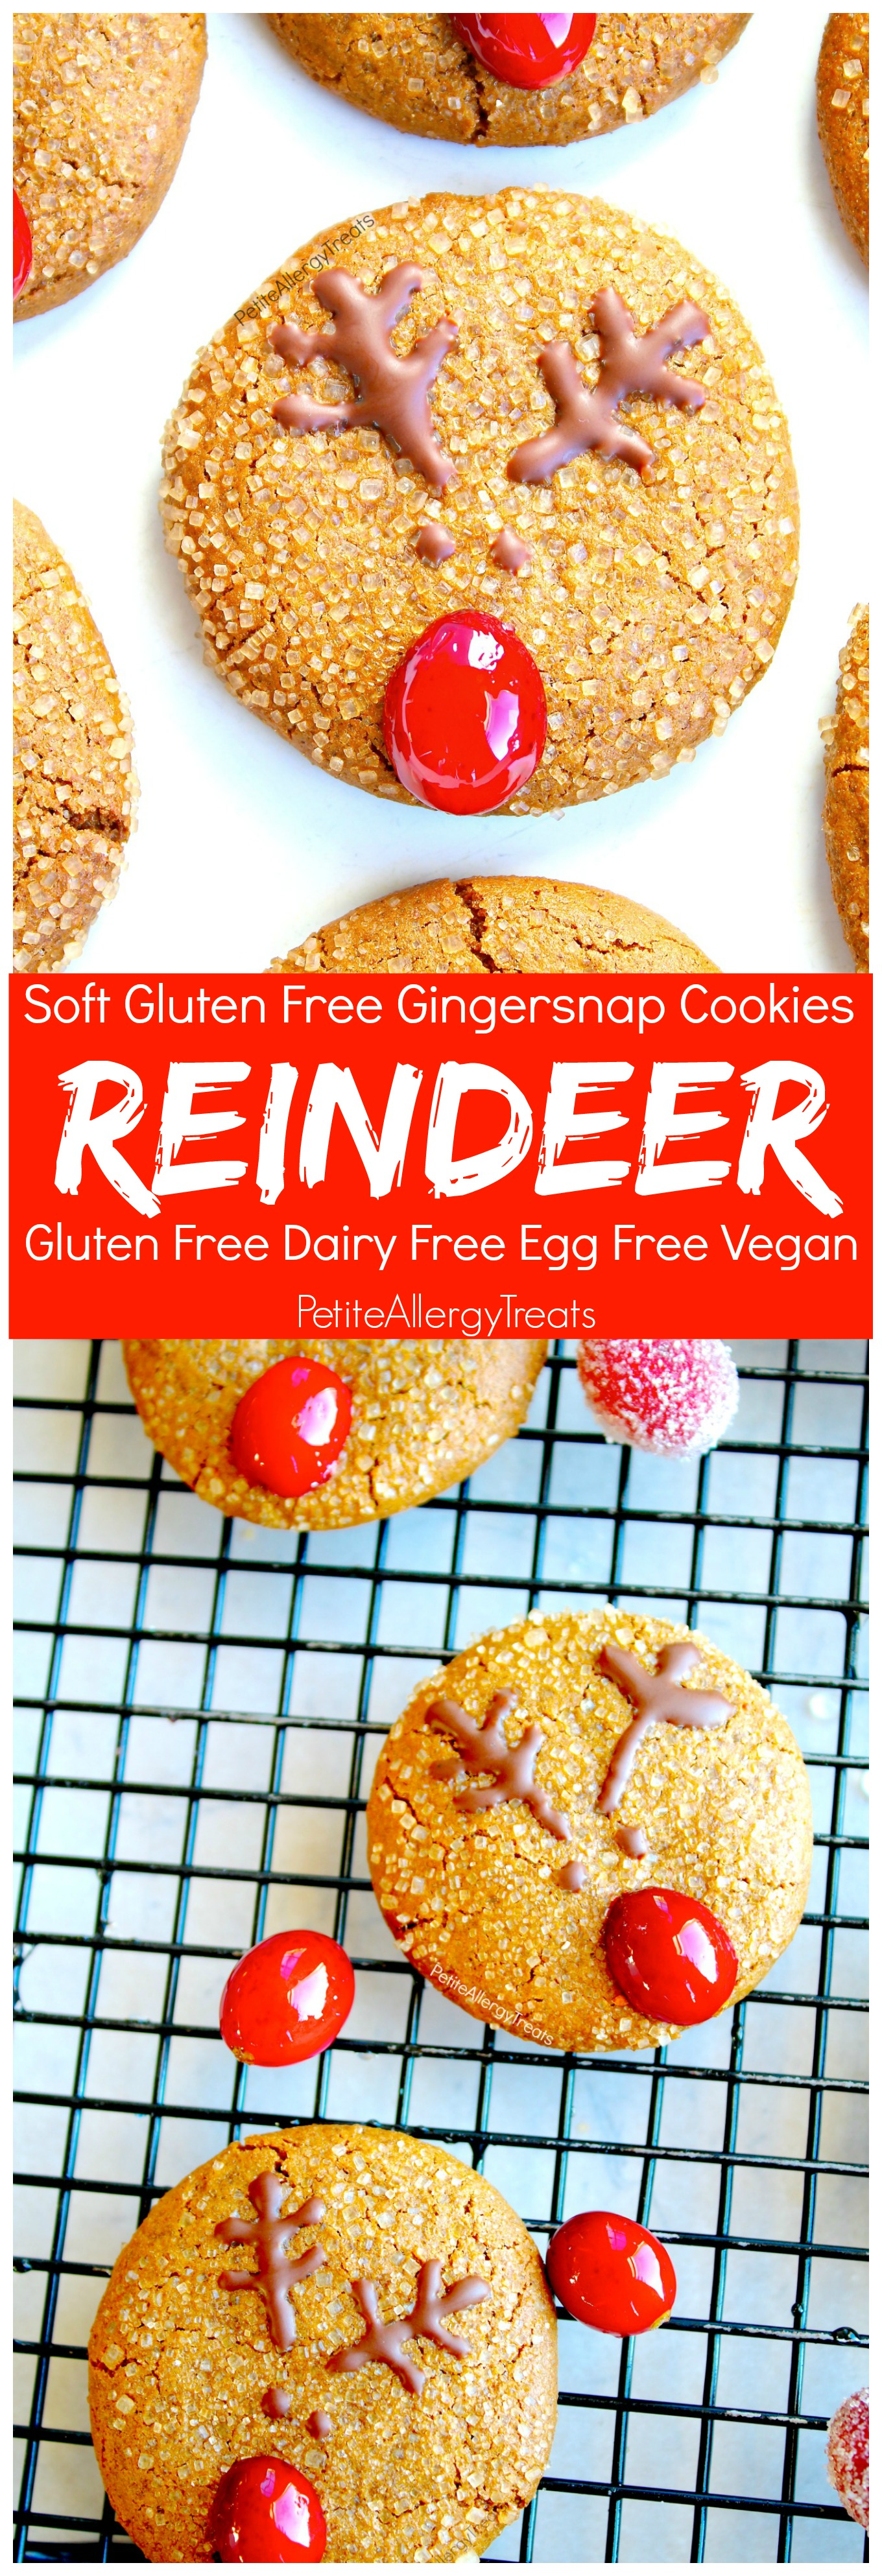 Gluten Free Gingersnap Reindeer Cookies (vegan dairy free) Recipe- Adorable Christmas reindeer cookies with natural red nose. Food Allergy friendly!